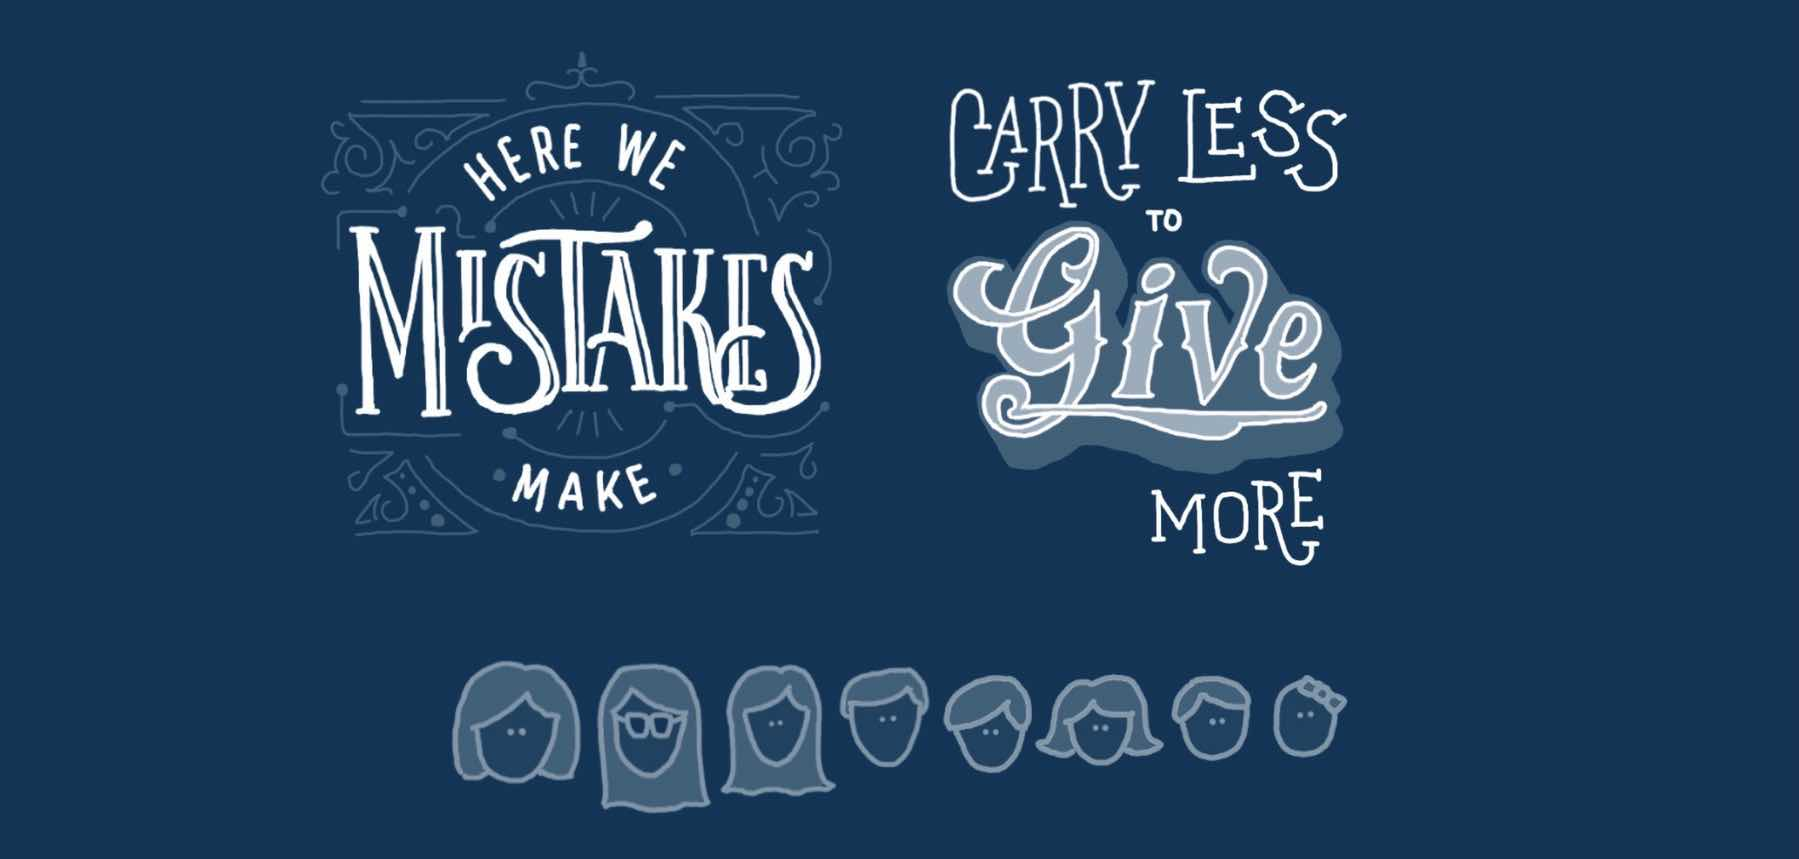 Carry less to give more goal